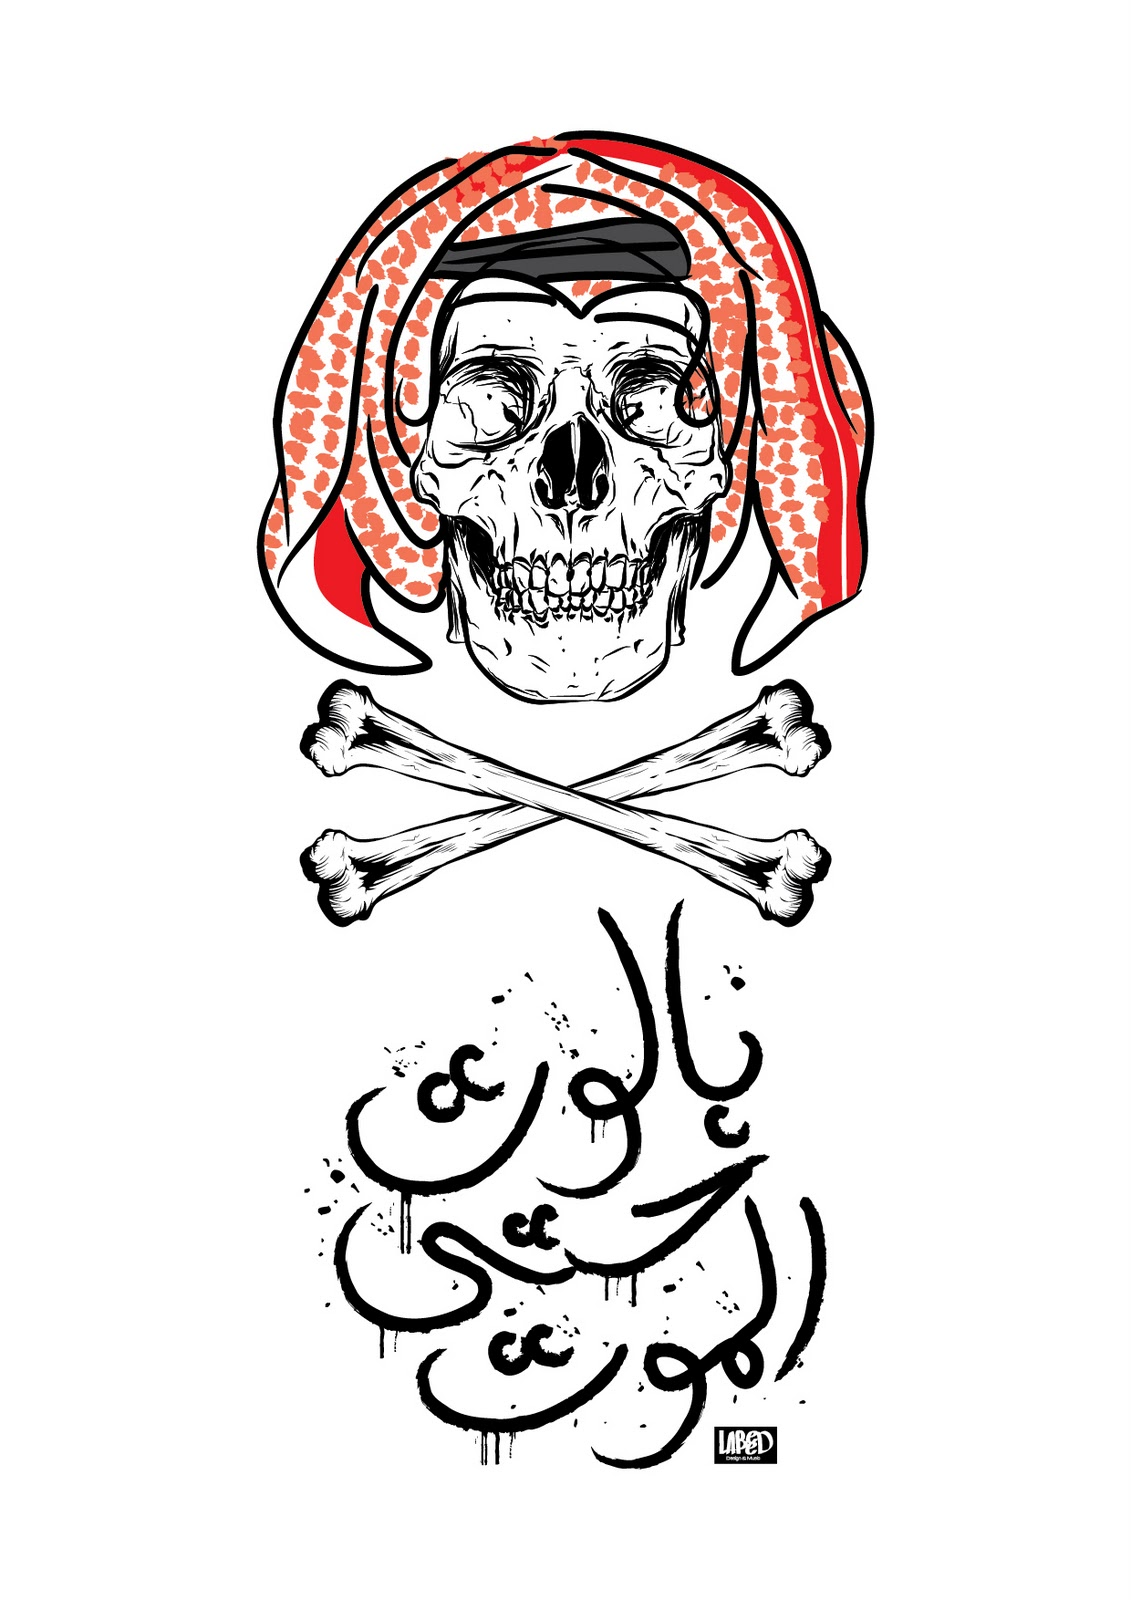 Design t shirt arabic - In Arabic Balout Until Death Balout Is A Very Famous Card Game That People Take Very Seriously Sometimes Here In Saudi If You Want To Play It You Have To